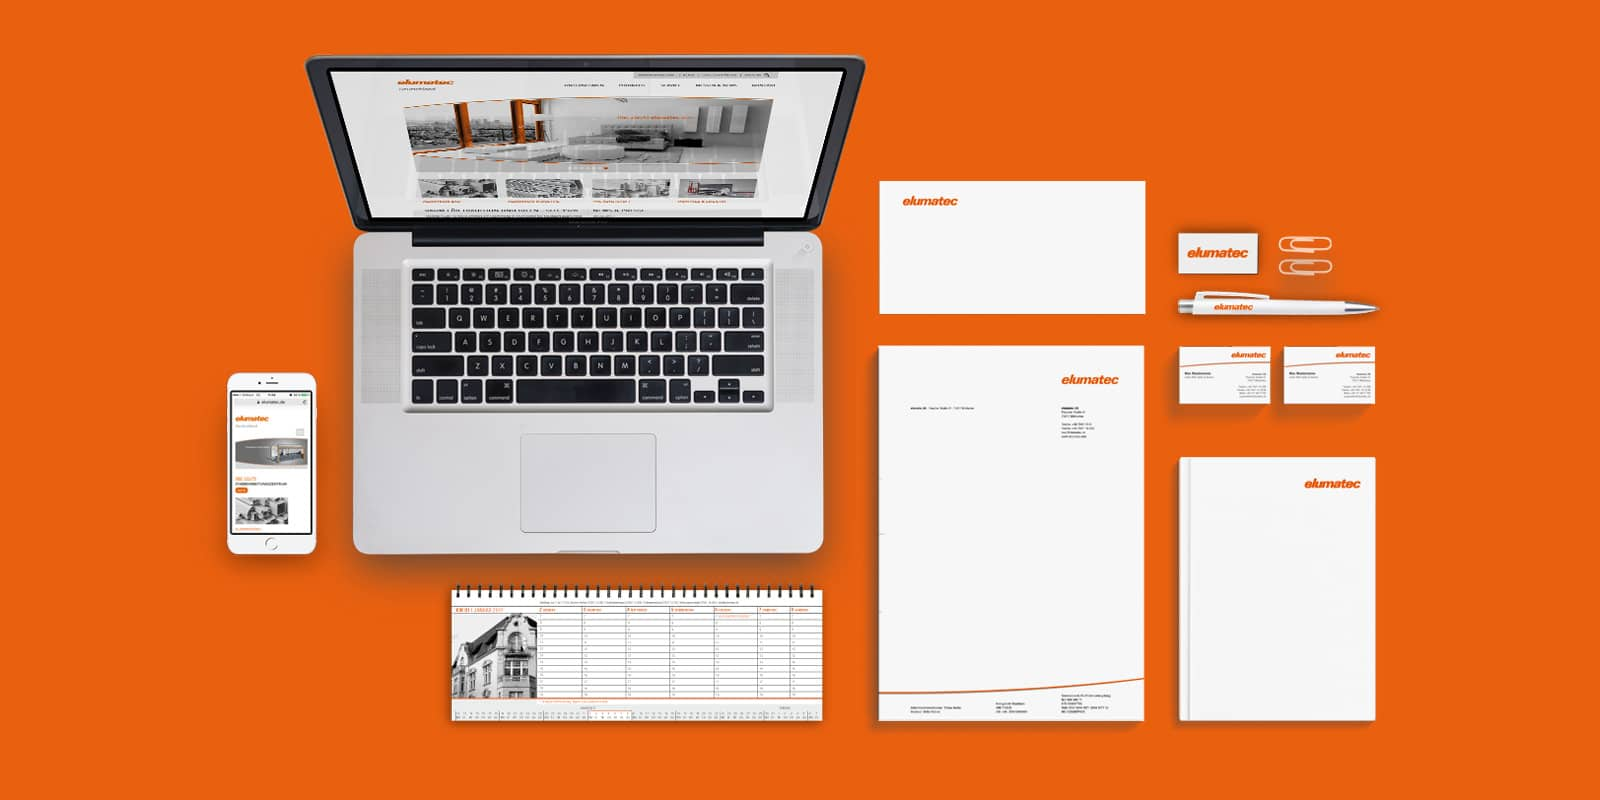 elumatec – Corporate Design